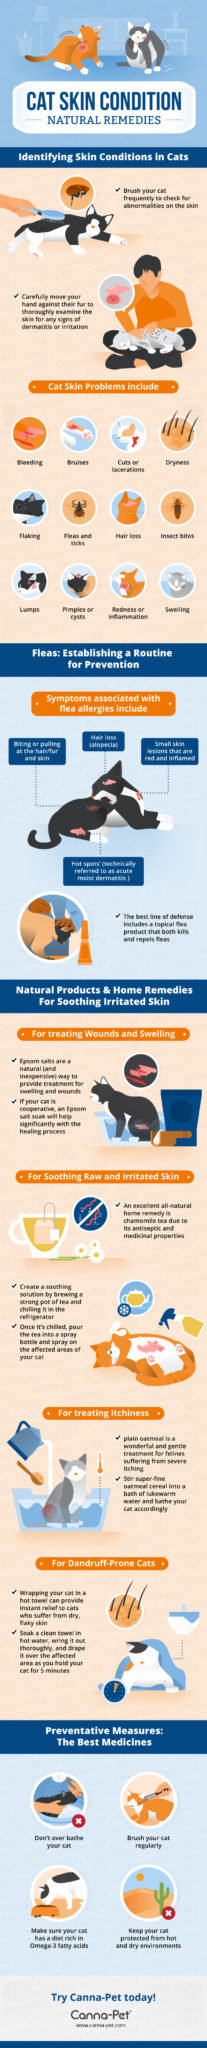 Cat Skin Conditions and Natural Remedies Infographic